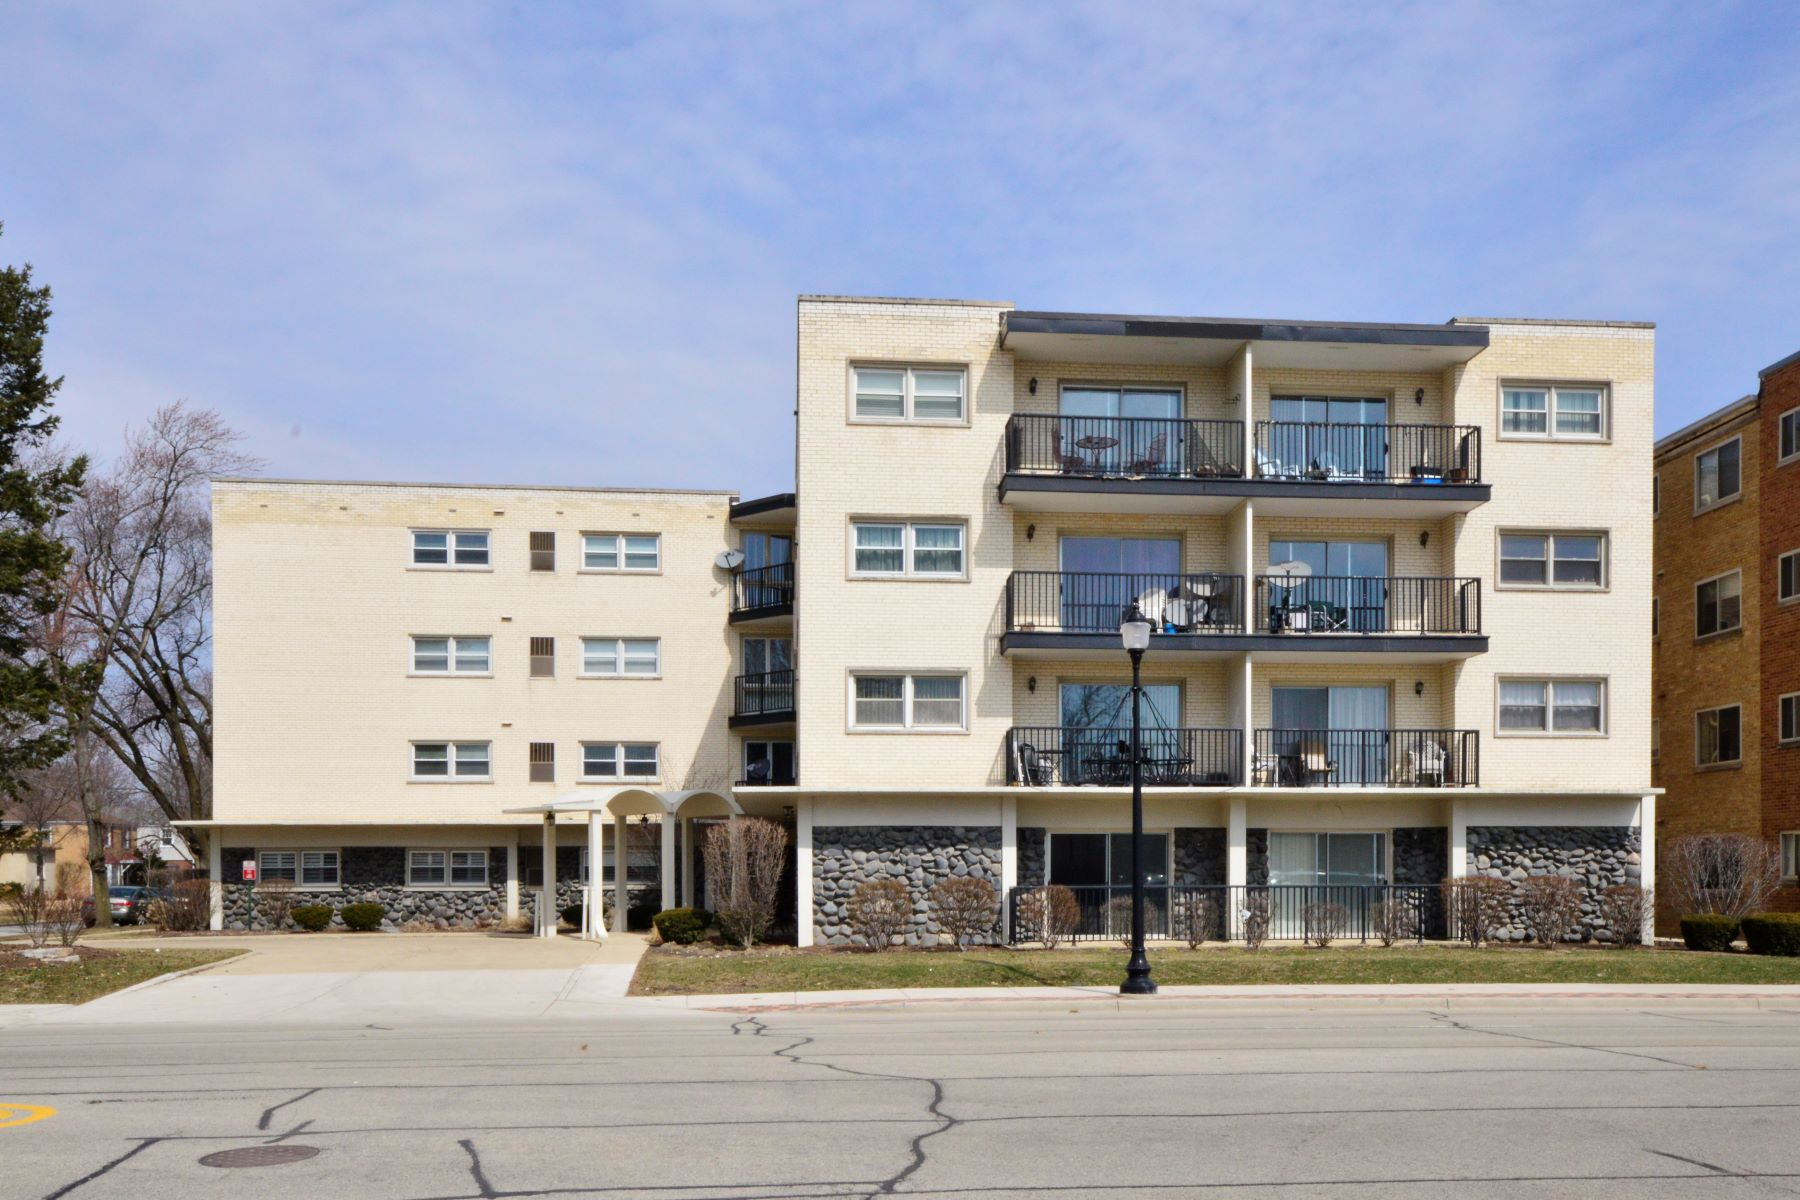 Condominiums for Active at Spacious Skokie Three Bedroom 8001 Lockwood Avenue Unit 208 Skokie, Illinois 60077 United States